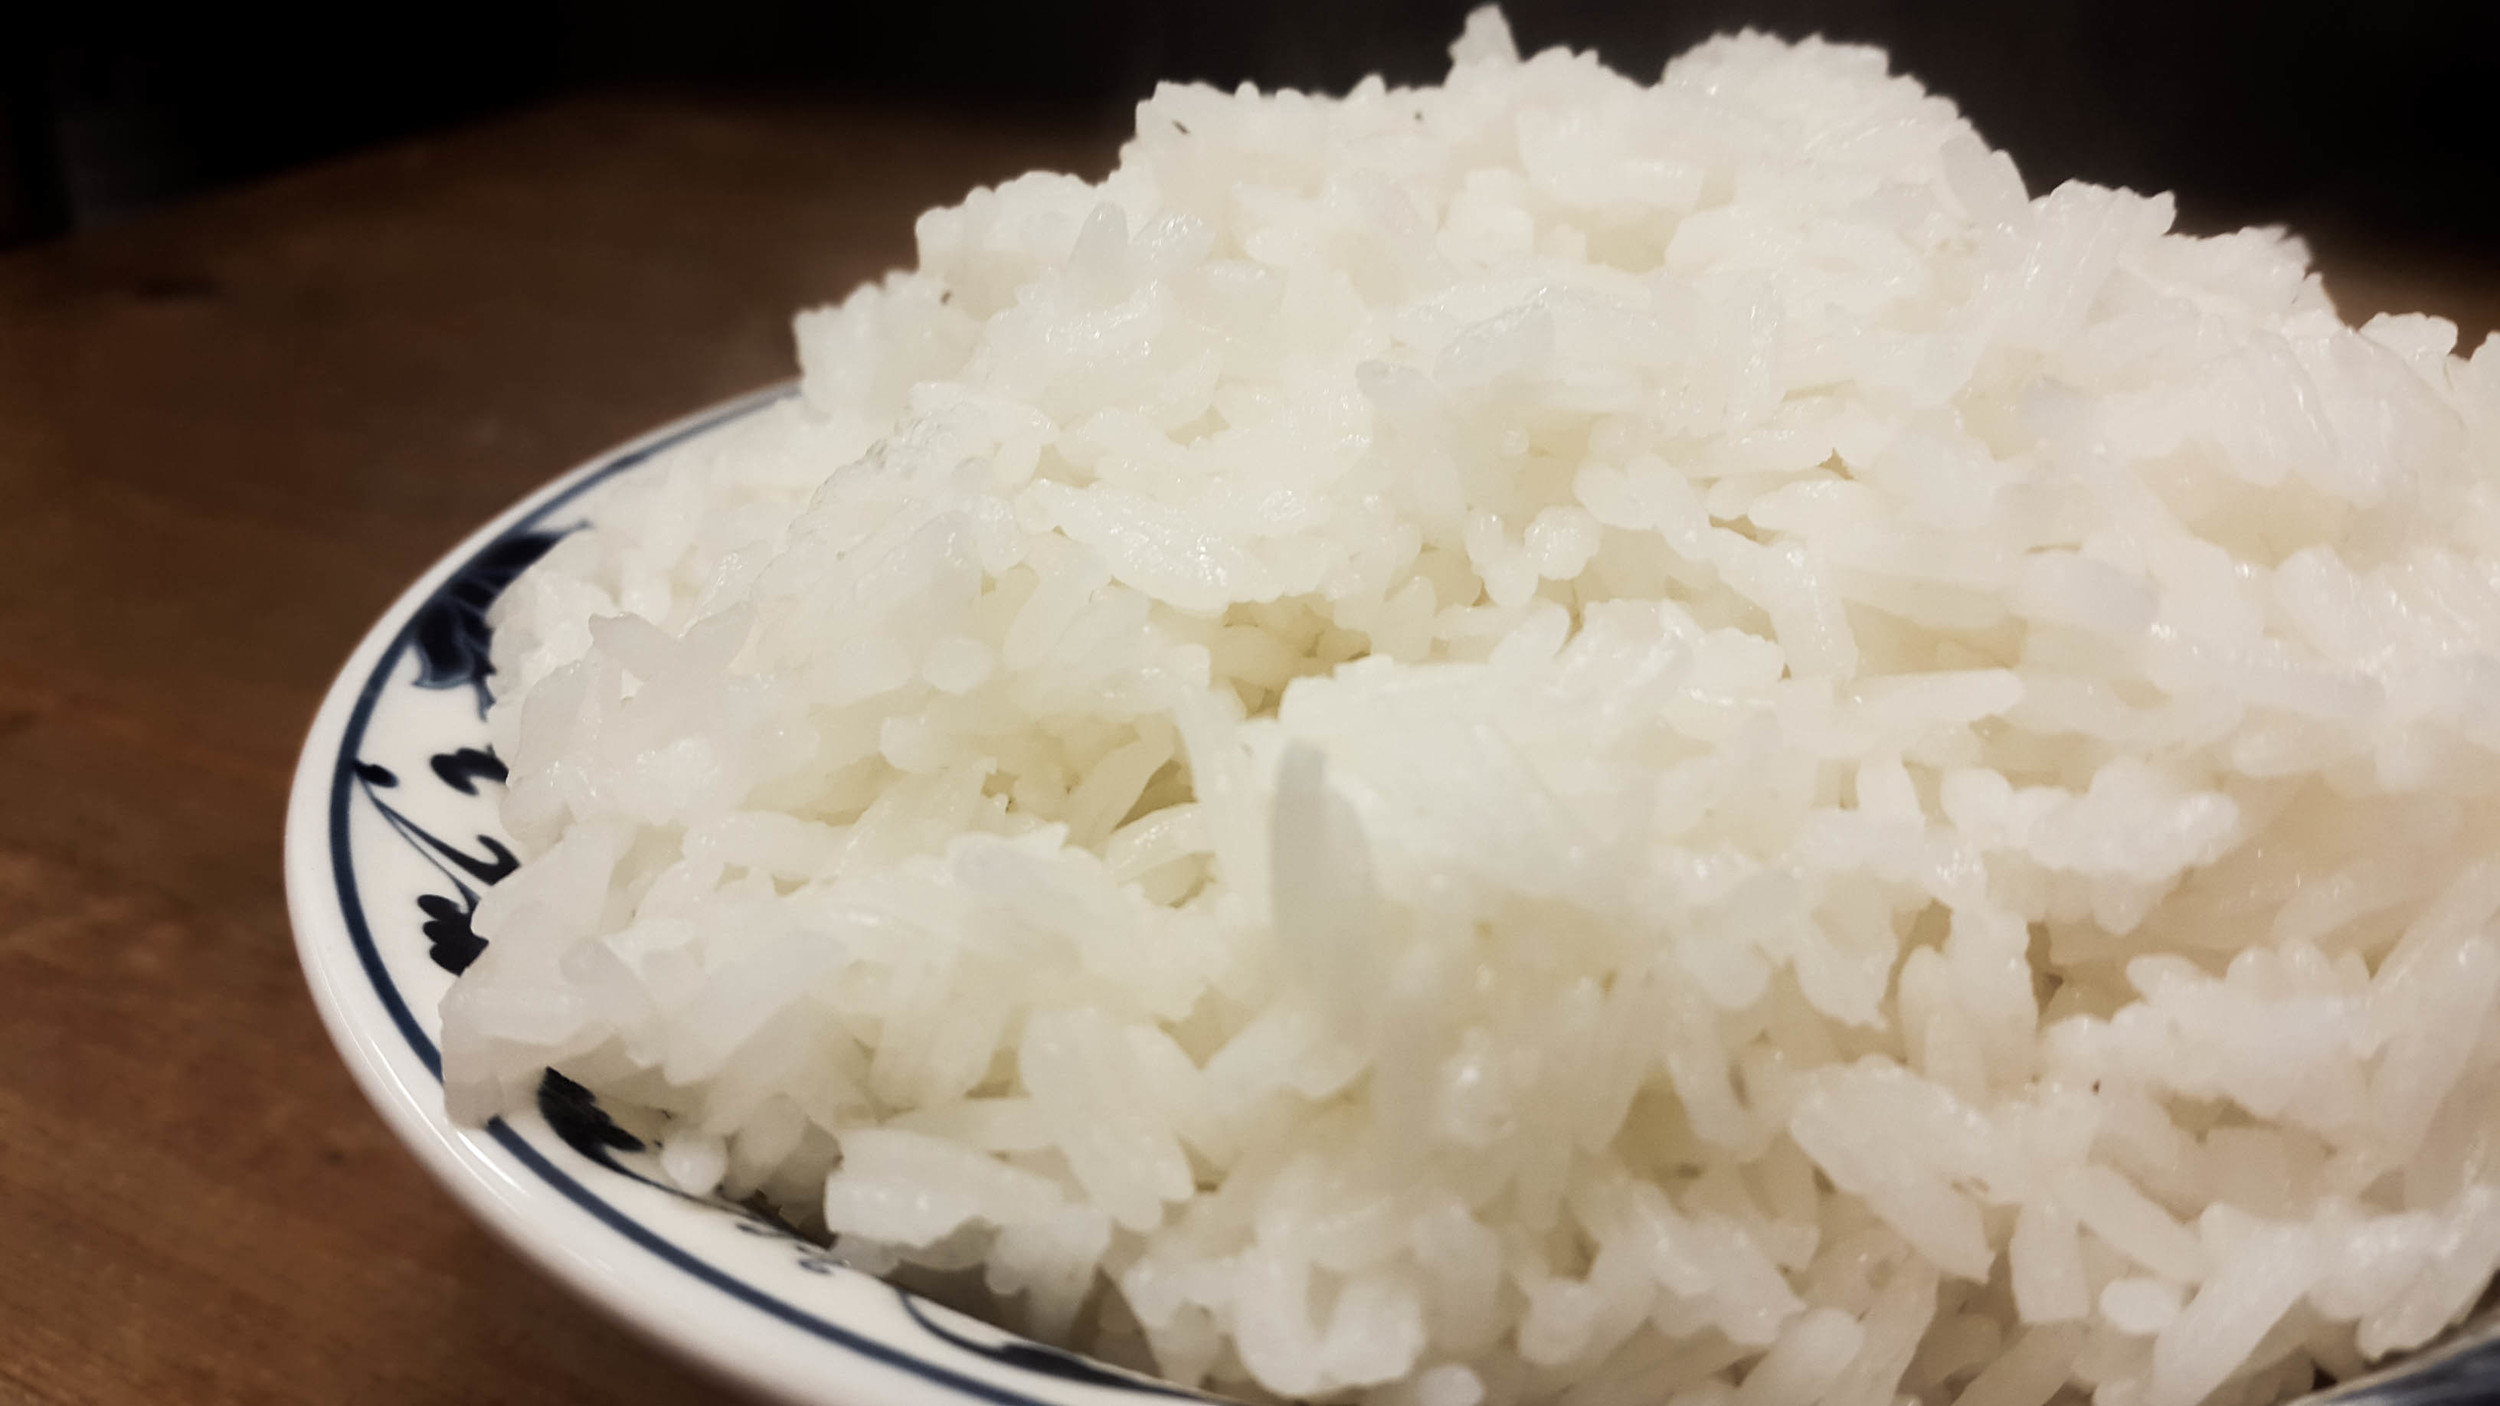 Peking_Restaurant_Cambridge_Boiled_Rice.jpg